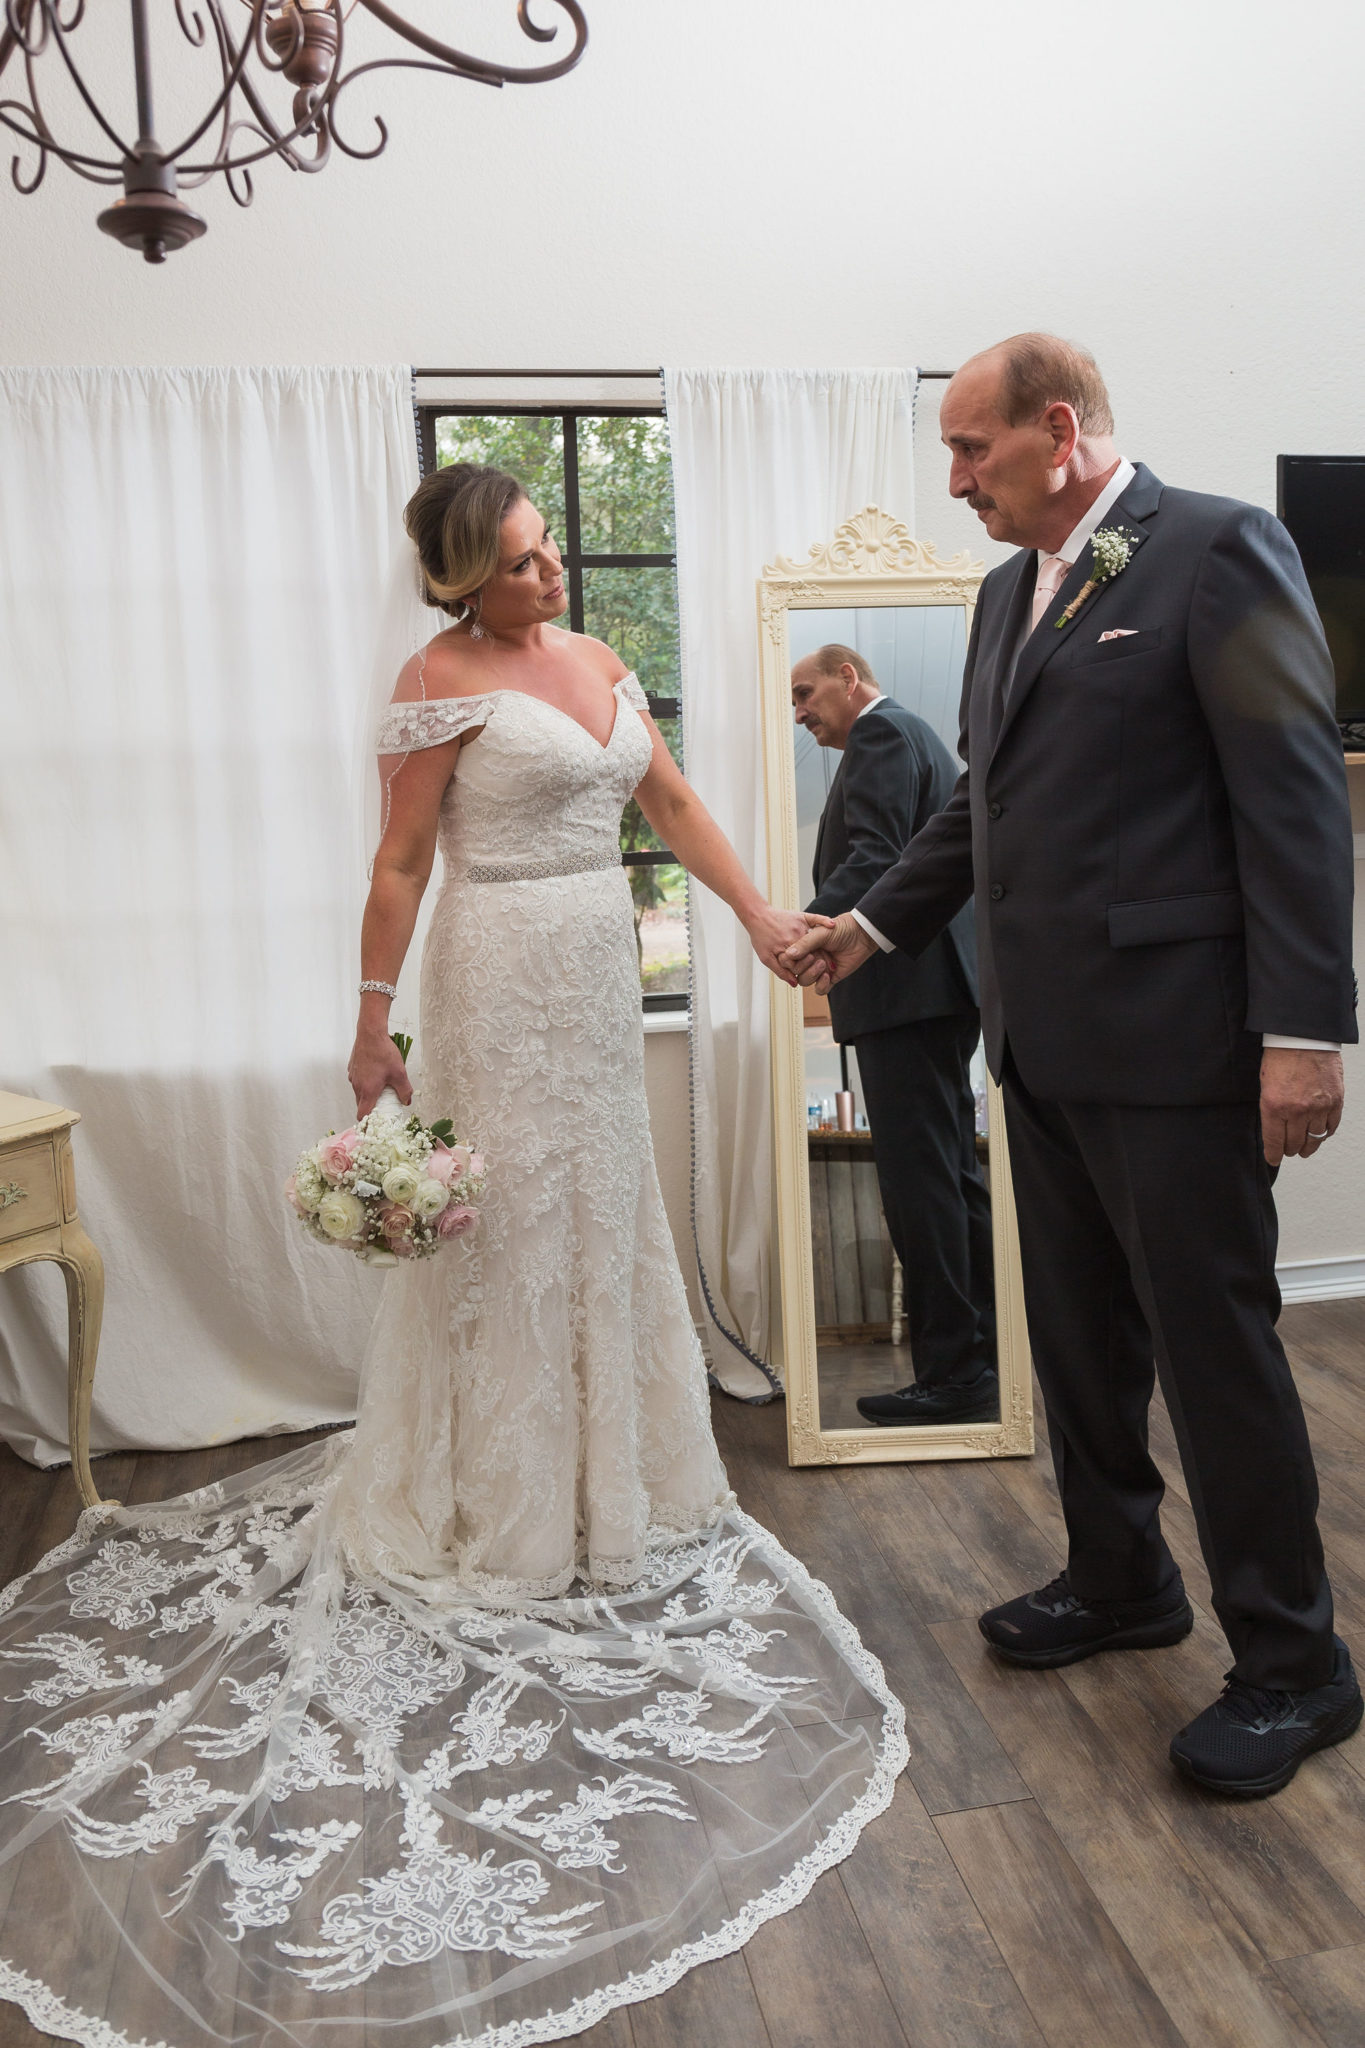 Father of the bride admiring how beautiful his daughter looks.